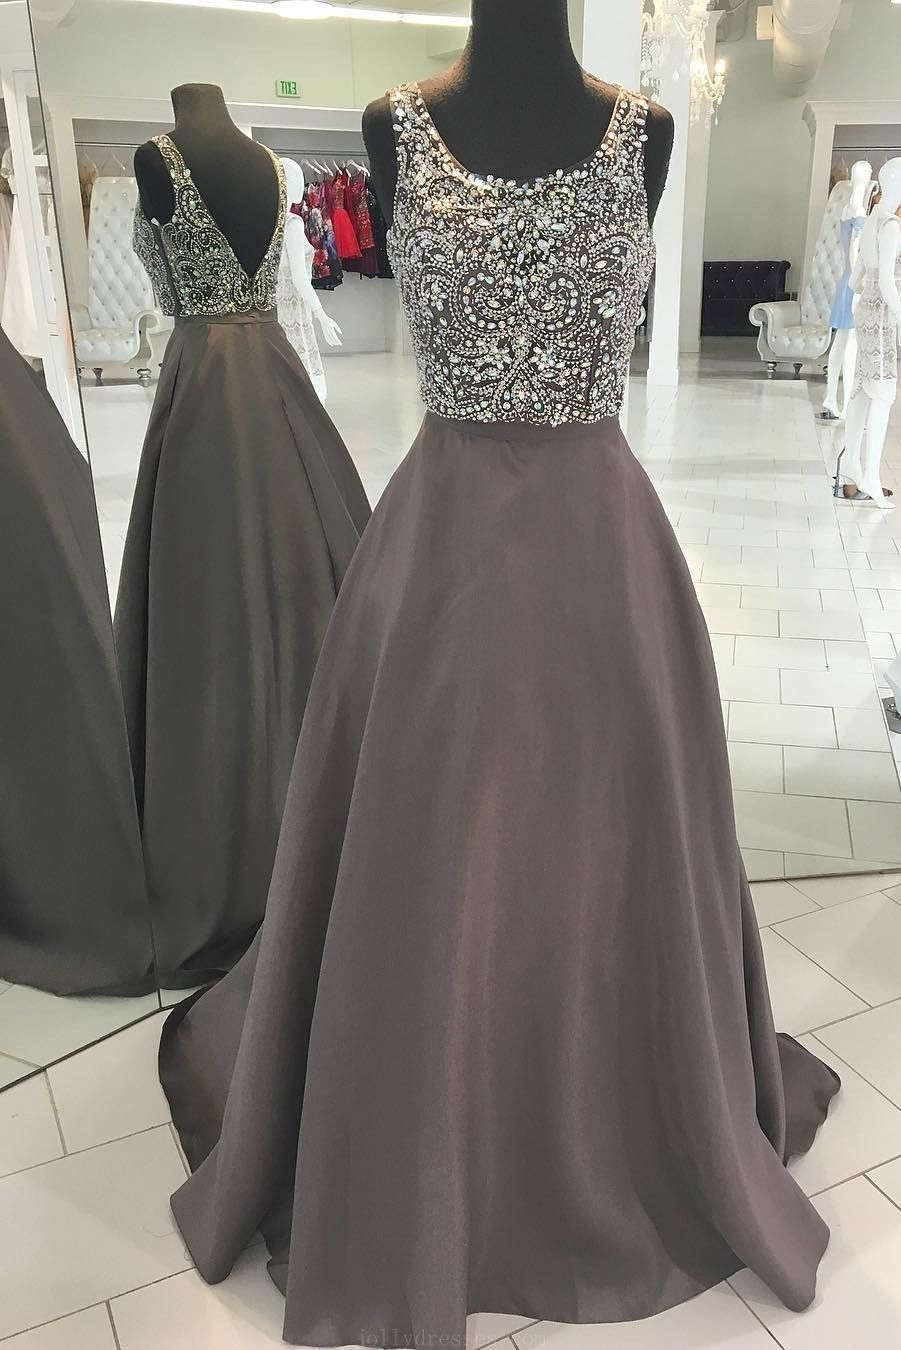 Customized delightful prom dresses long prom dresses two